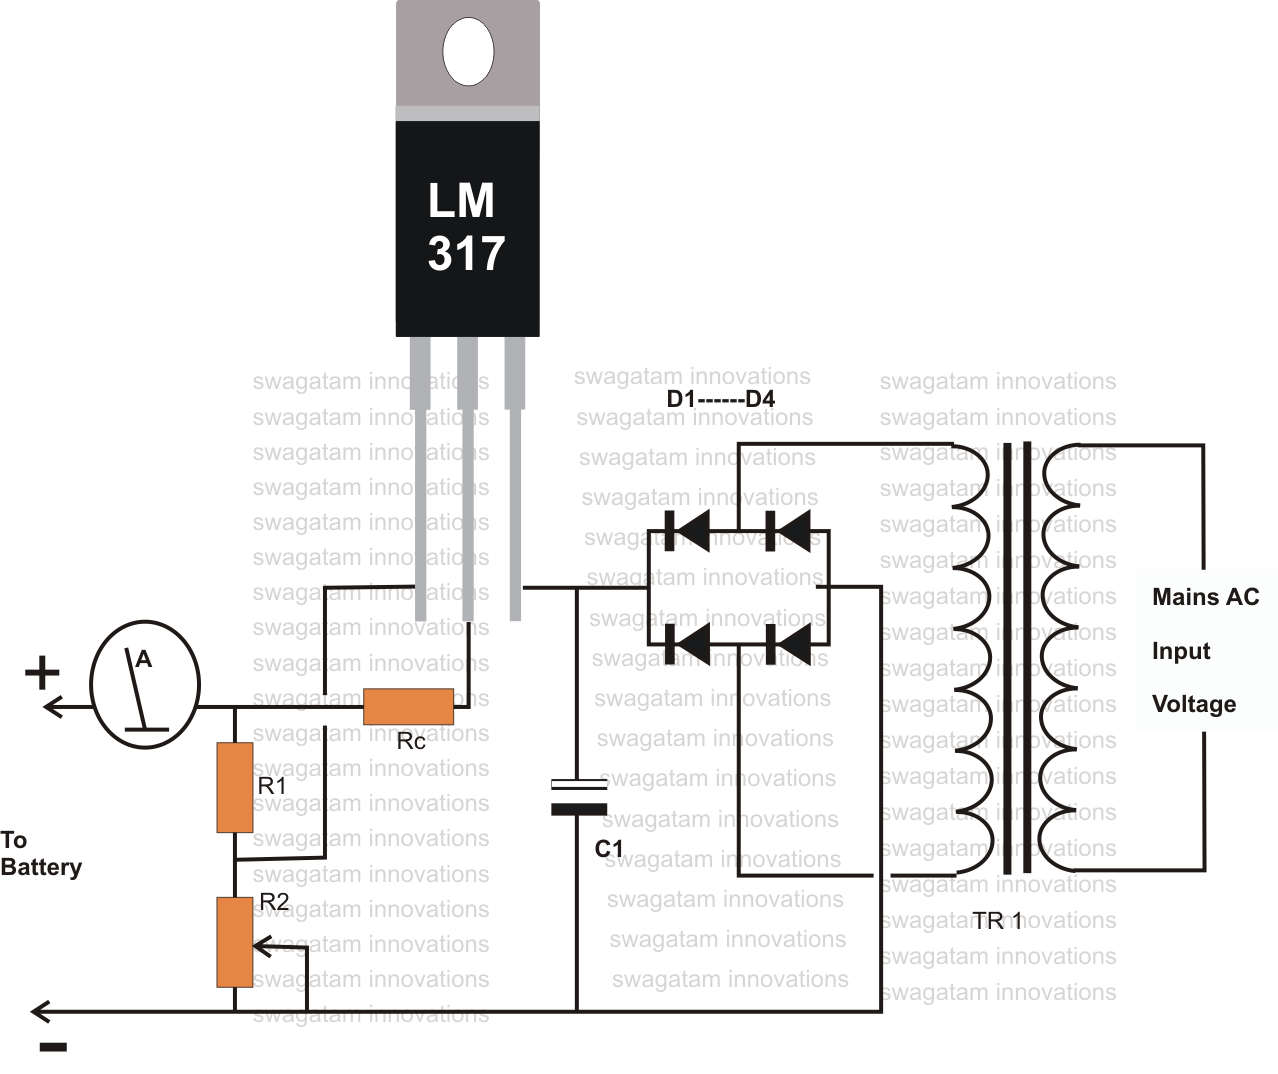 12 Volt Battery Charger Diagram Circuit Diagram Simple Electronics Electronics Circuit